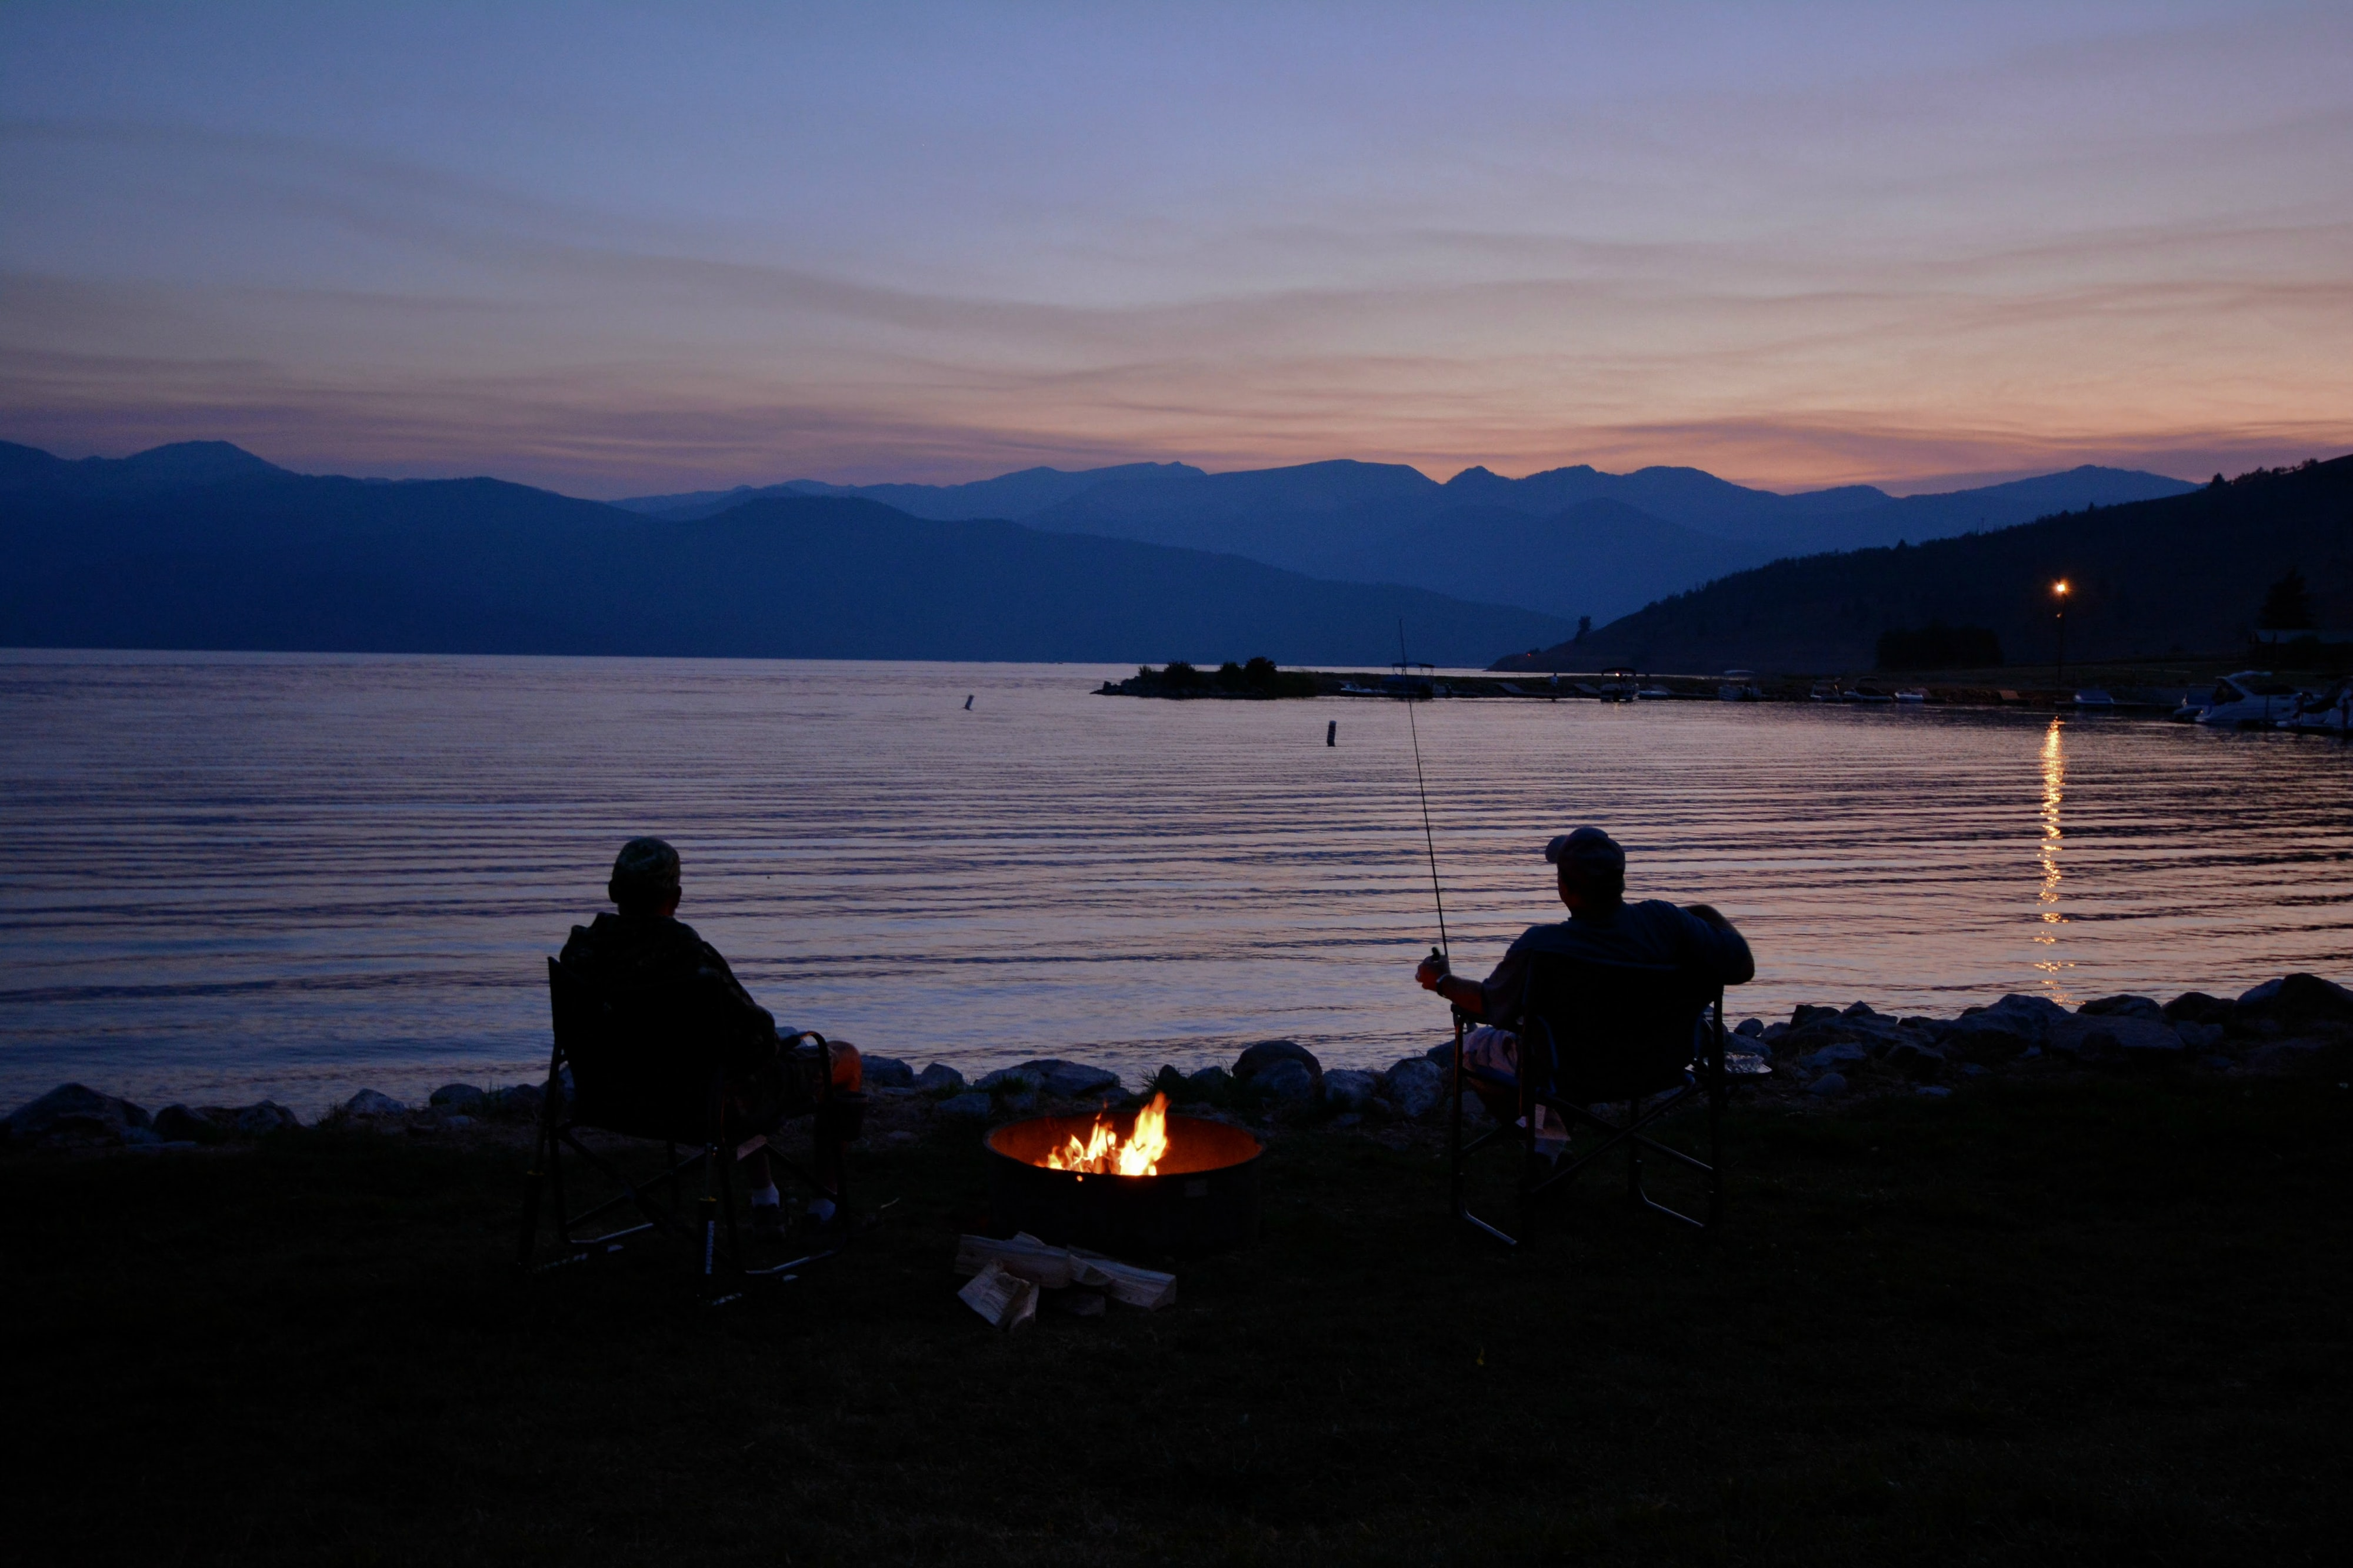 Two people sitting by campfire and lake